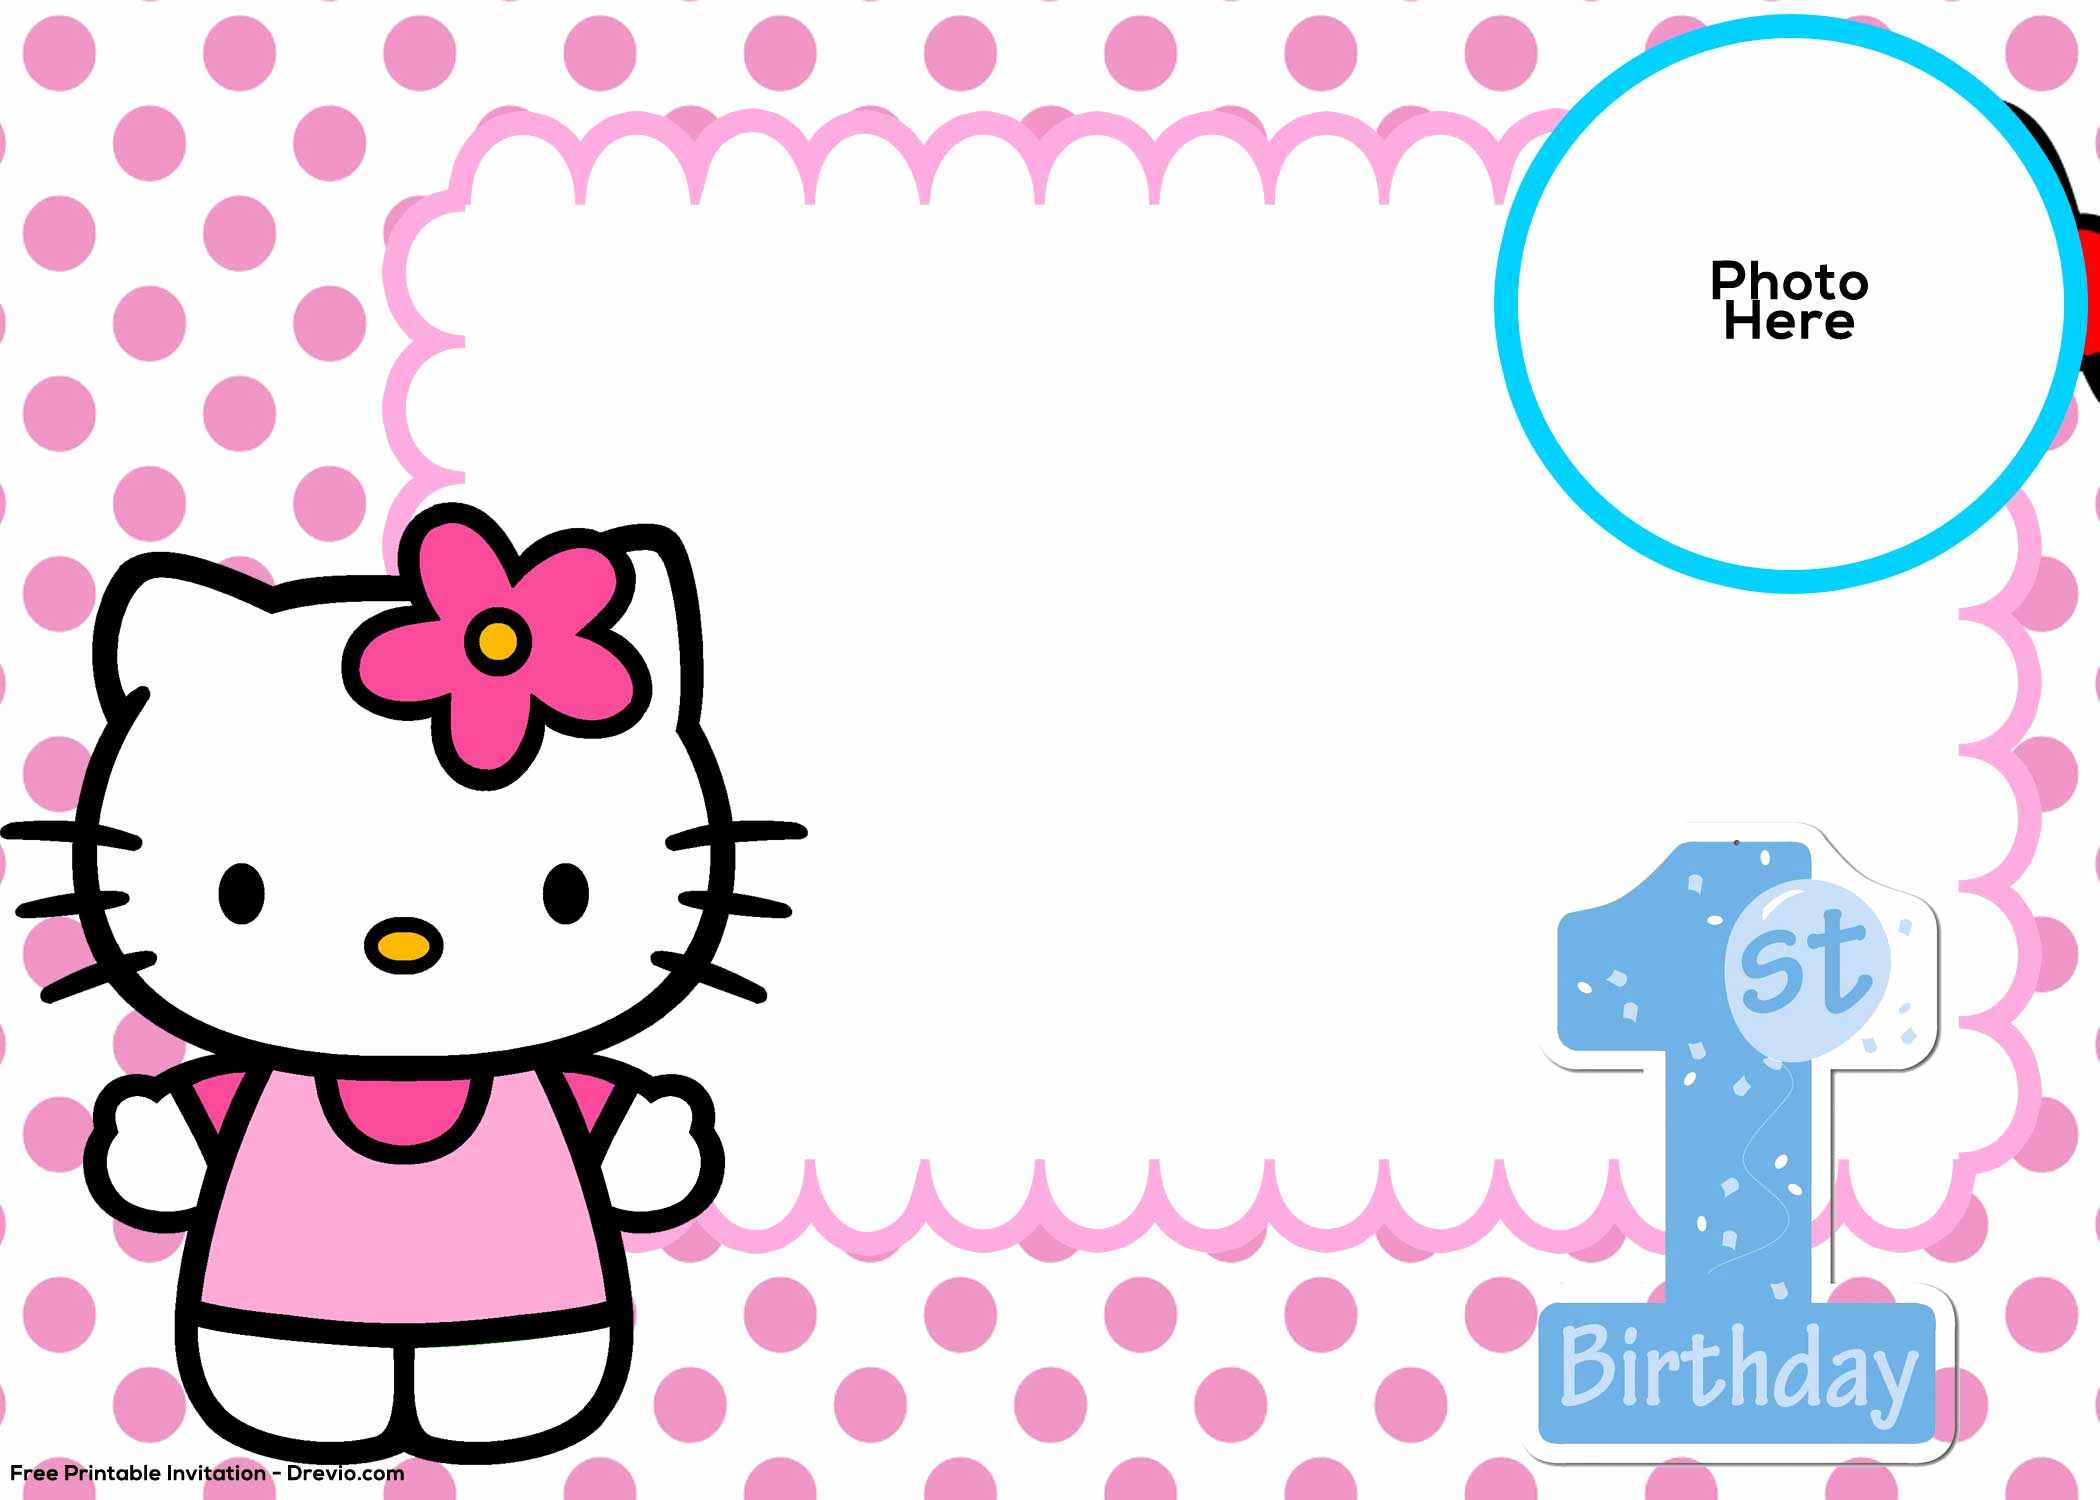 Hello Kitty Invitation Template Inspirational Free Hello Kitty 1st Birthday Invitation Template